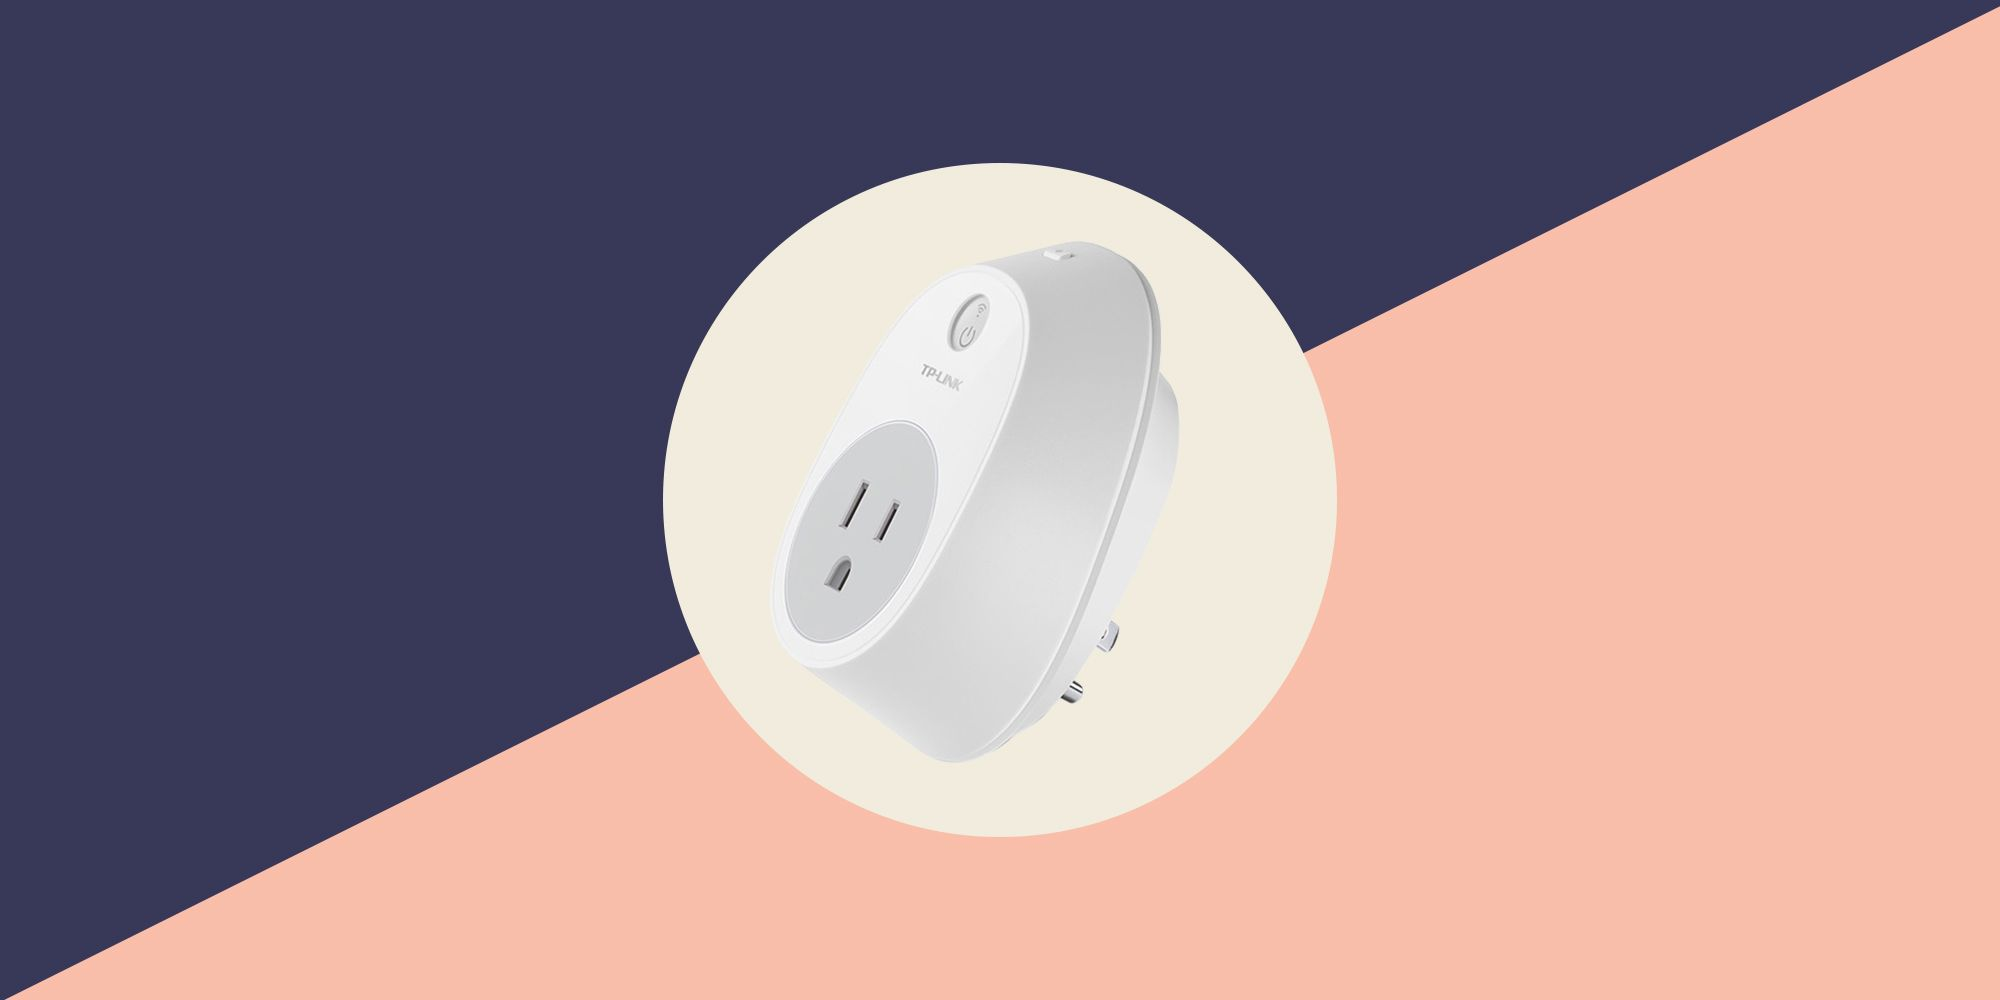 This smart gadget can help keep your home safe while you're on holiday